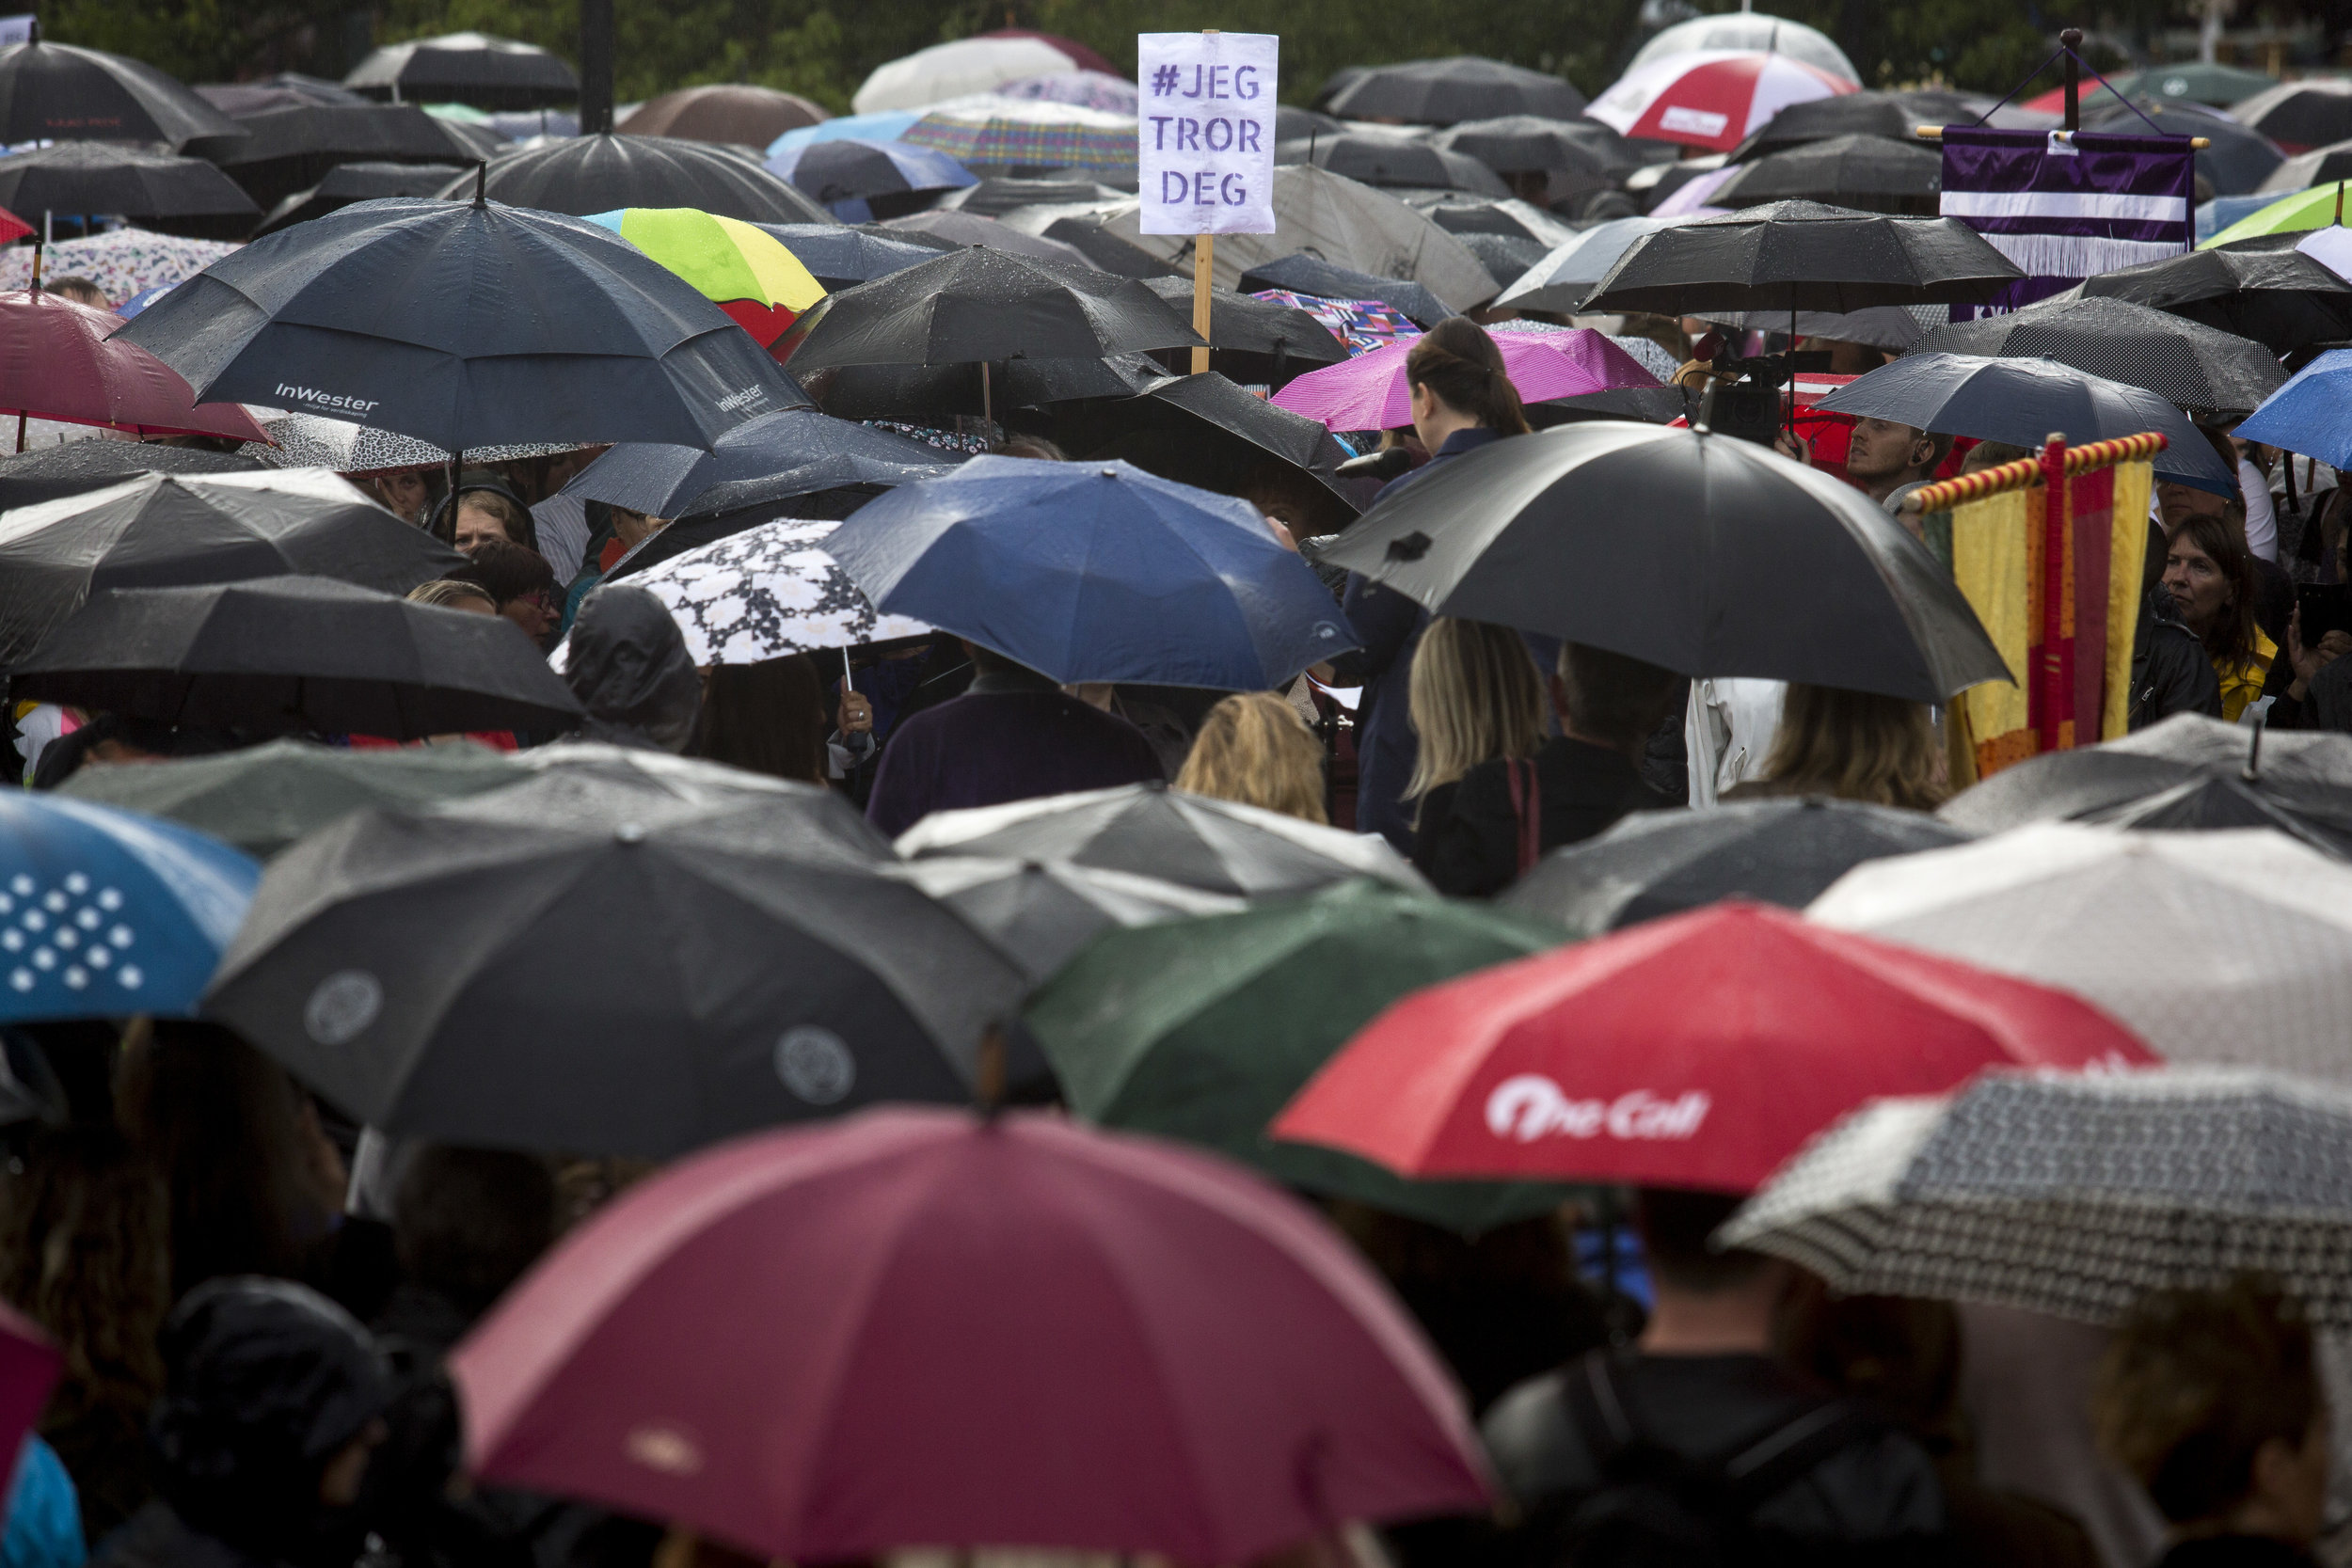 #JegTrorDeg become hashtag after three men were acquitted of gang rape by Andrea Voldum in the so-called Hemsedal case. After the verdict several thousand gathered in front of Parliament to show their support for Andrea.